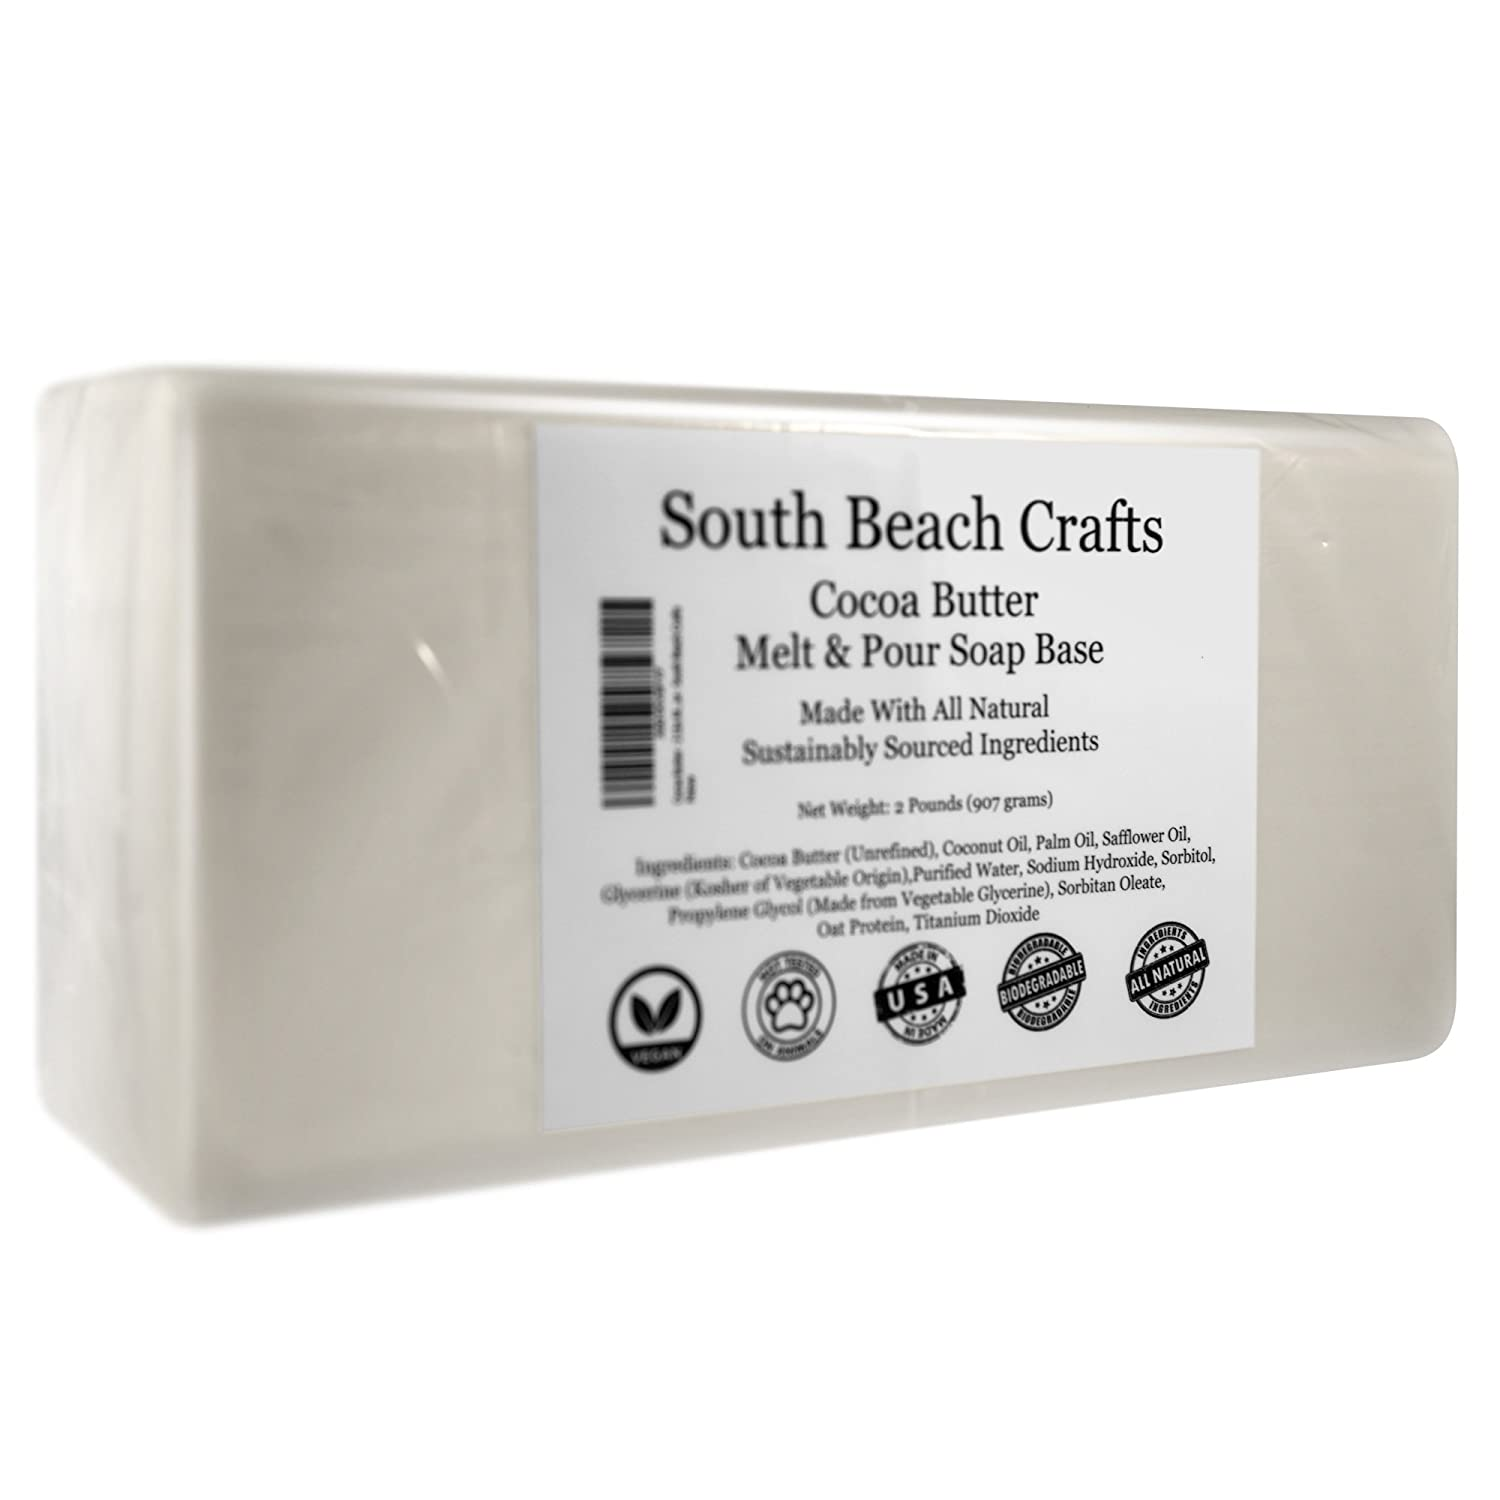 Cocoa Butter 2 Lbs Melt and Pour Soap Base South Beach Crafts